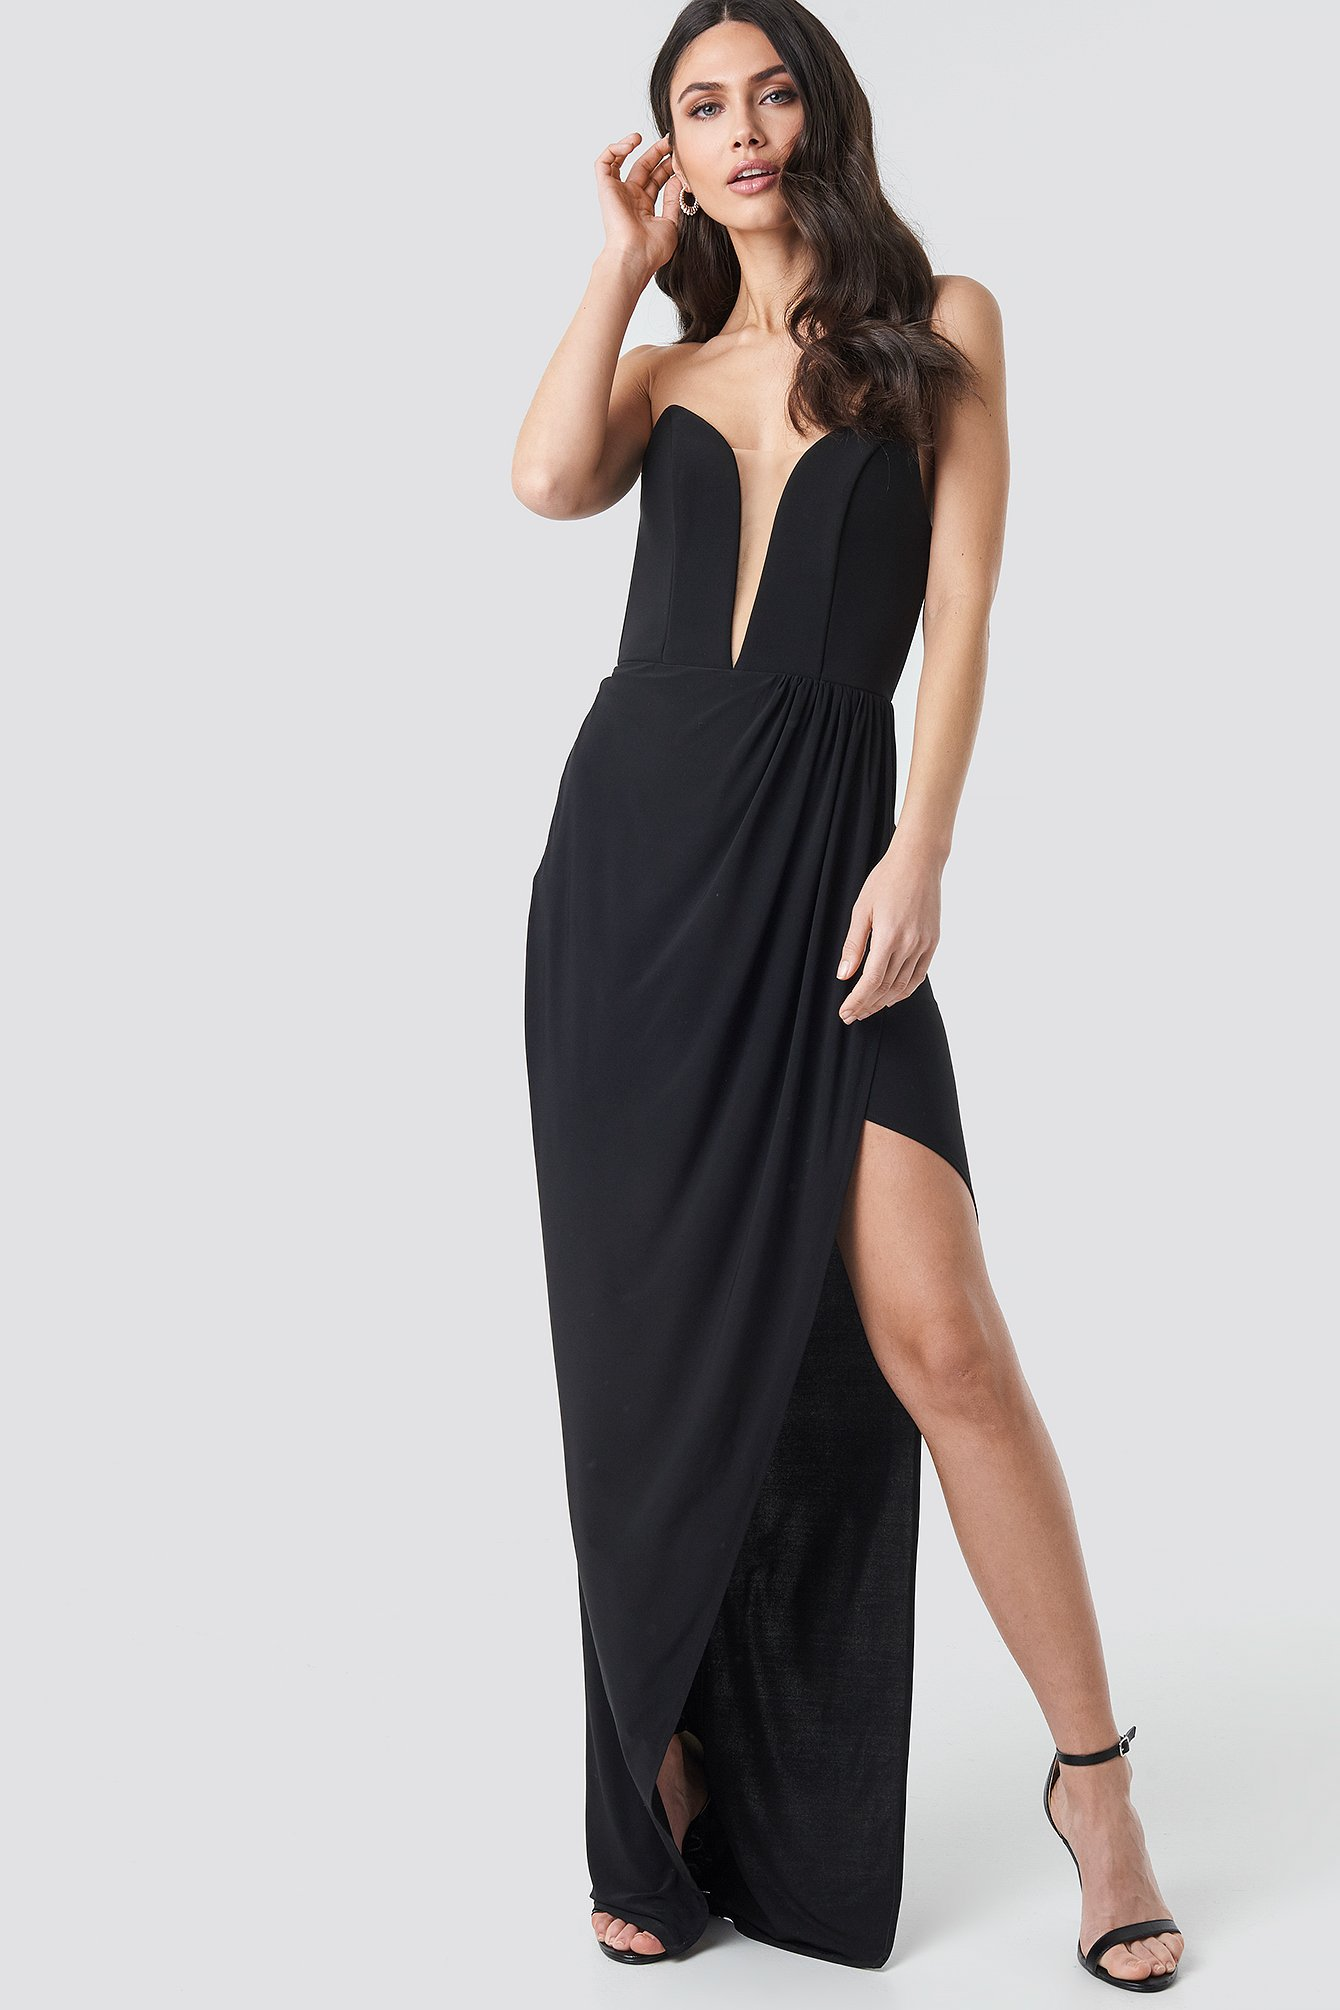 Black Strapless Evening Dress Gown